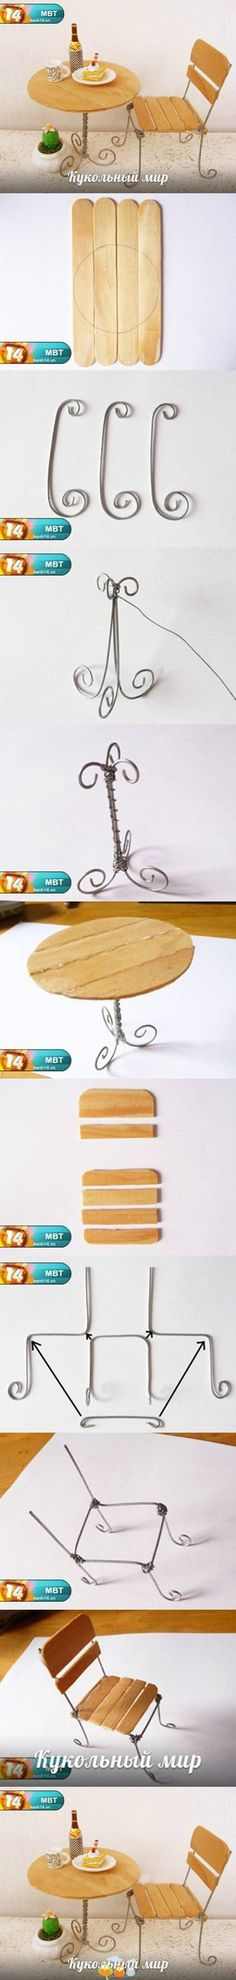 table and chair from tongue depressors and paper clips or regular wire!.